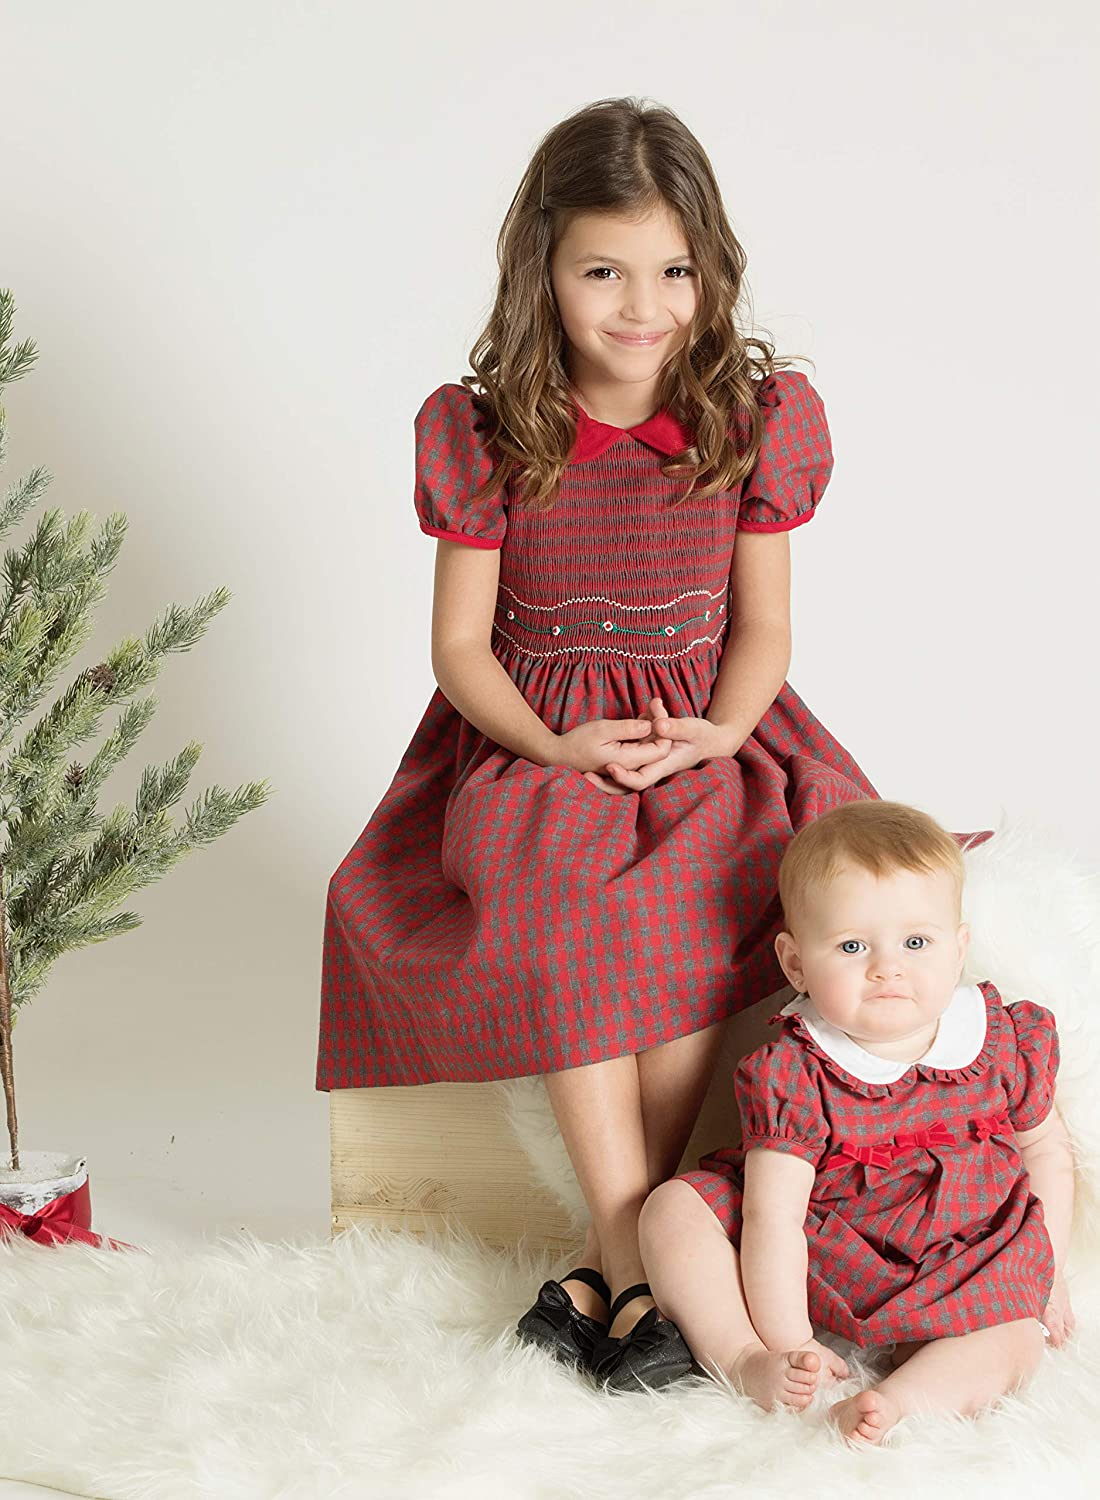 Kids 1950s Clothing & Costumes: Girls, Boys, Toddlers Carriage Boutique Girls Dresses Holiday Red Plaid Short Sleeve Dress with Hand Smocking $60.00 AT vintagedancer.com